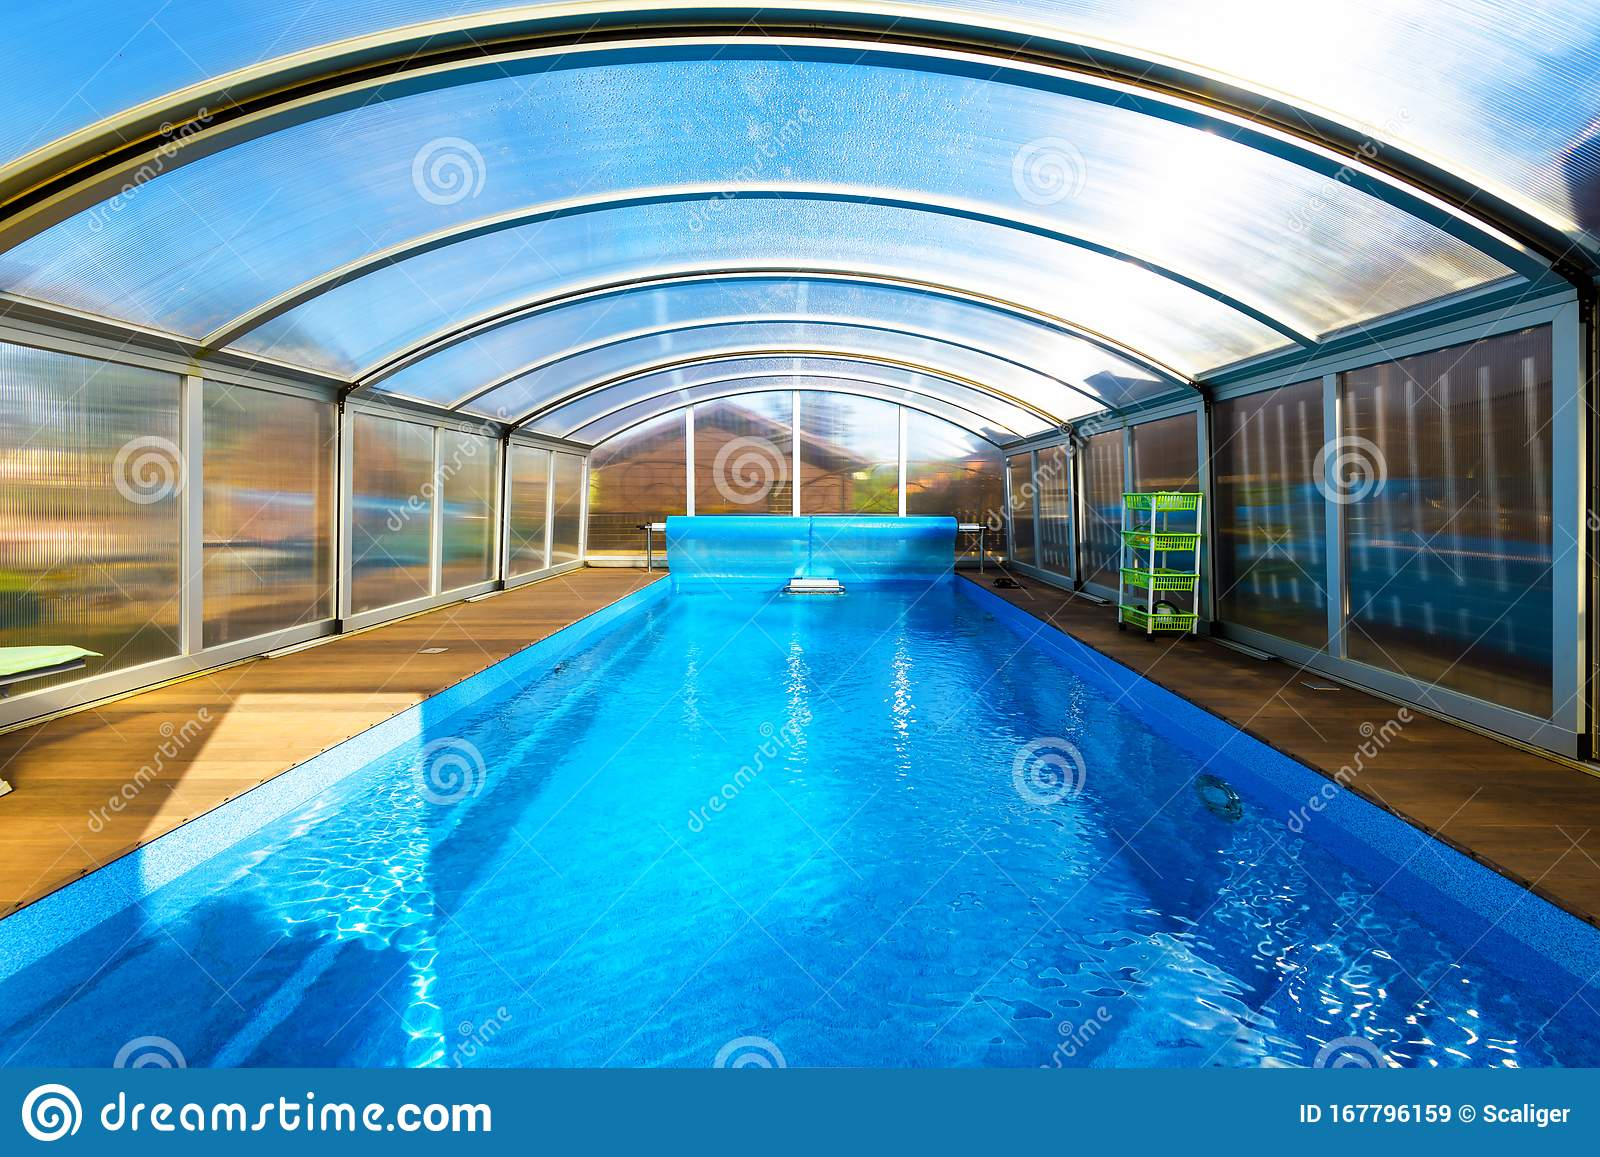 Swimming Pool With Blue Water And Transparent Plastic Tent ...